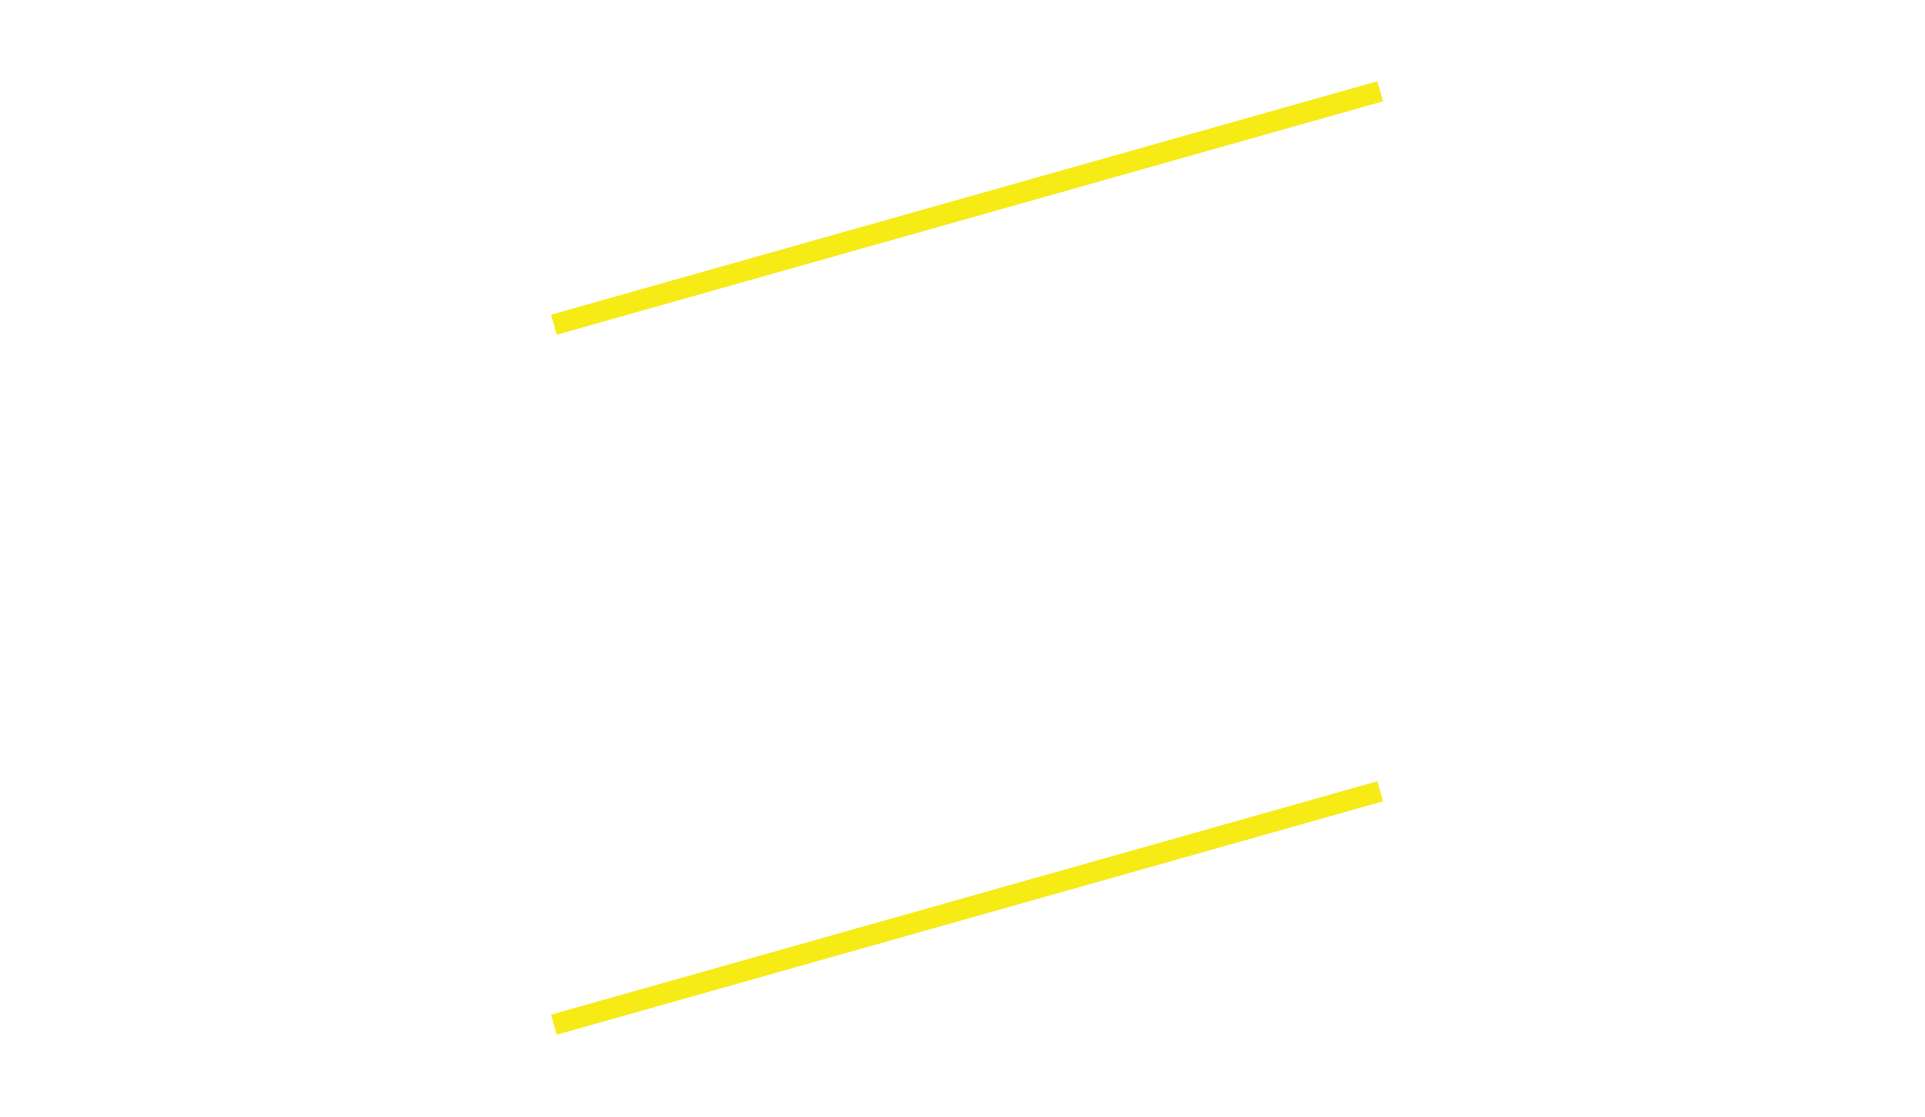 From custom furniture to interstate bridges — We Can Weld It.